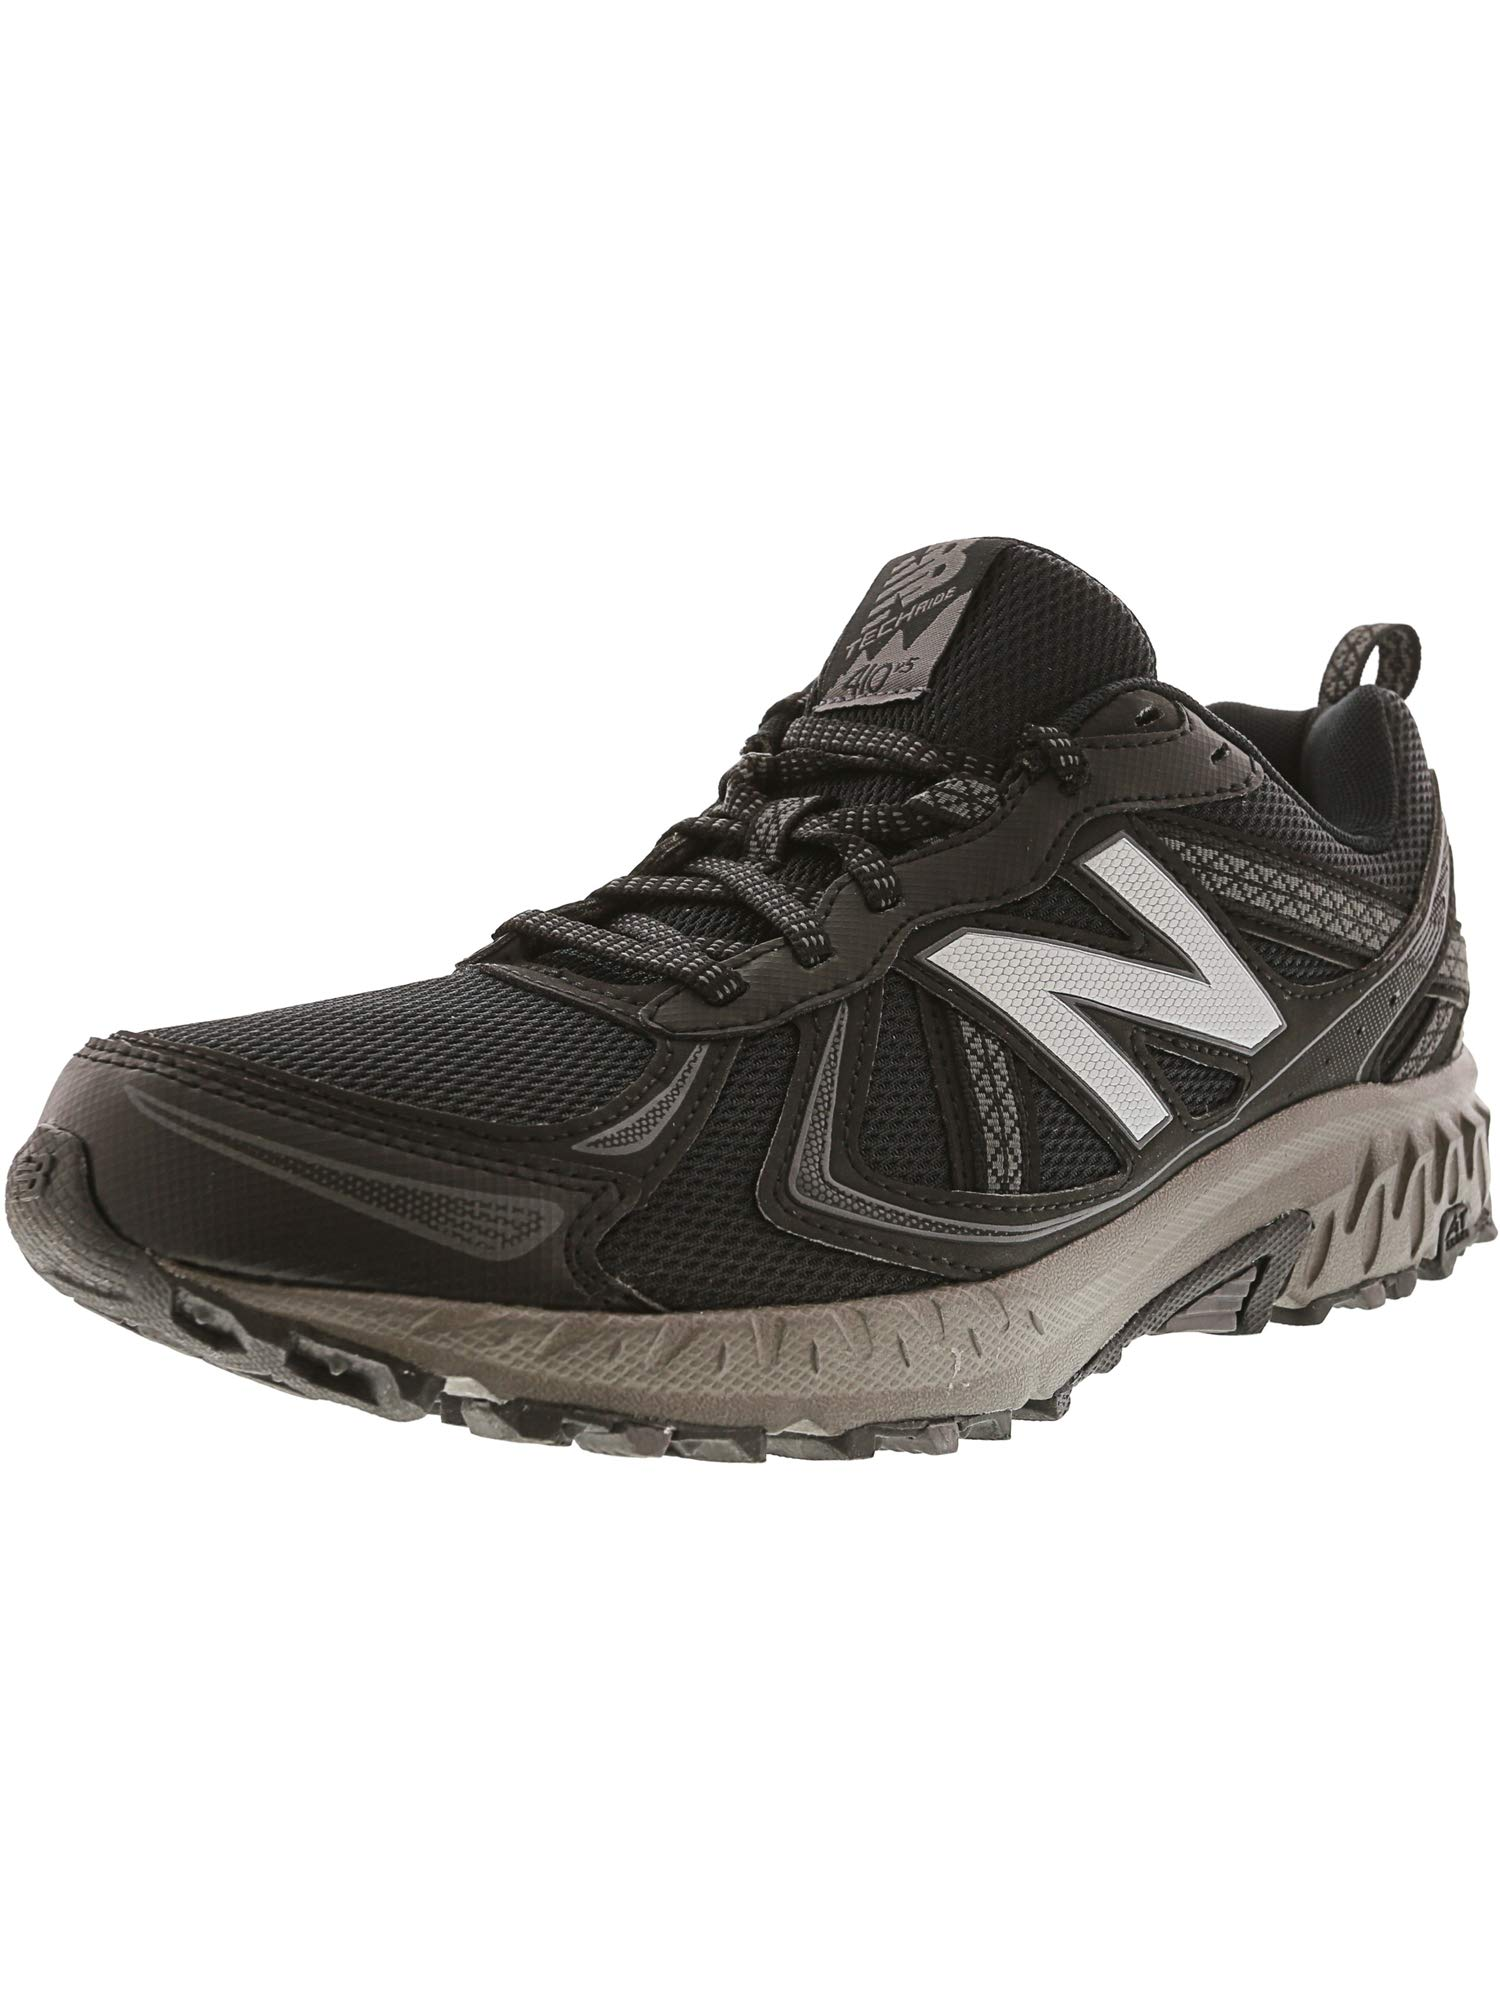 New Balance Speed MT410v5 by New Balance (Image #1)